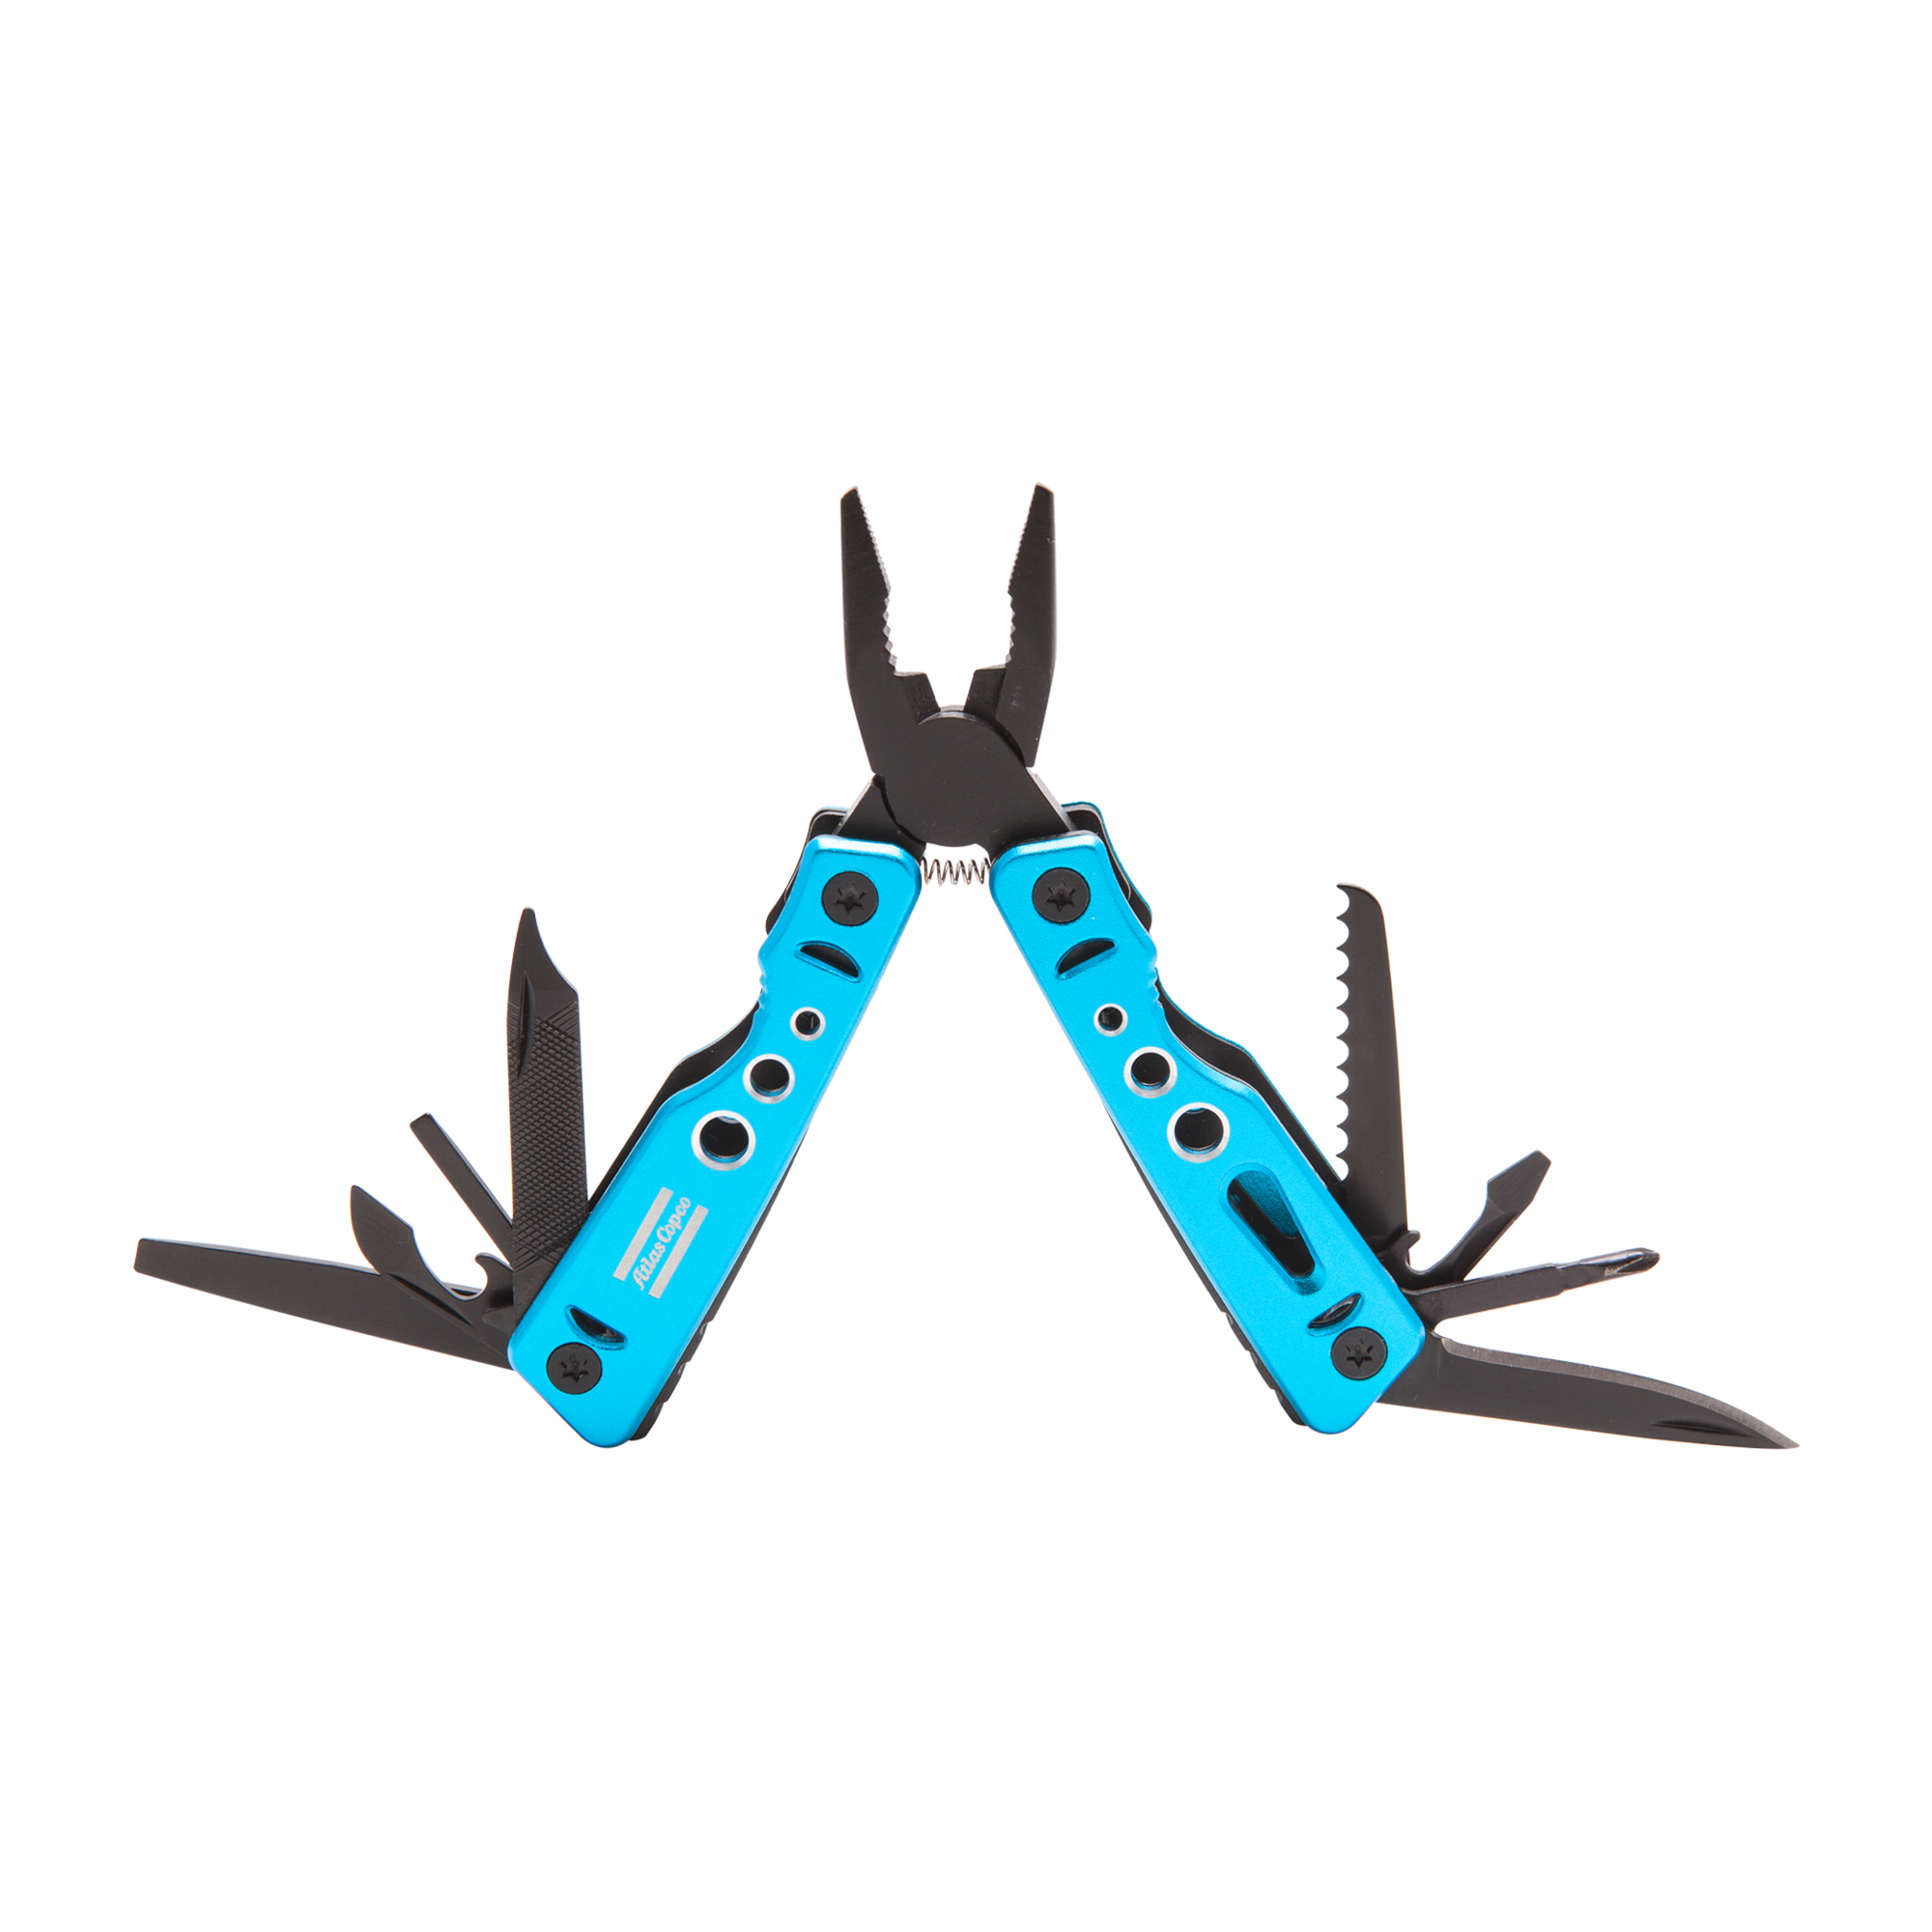 Multitool minor